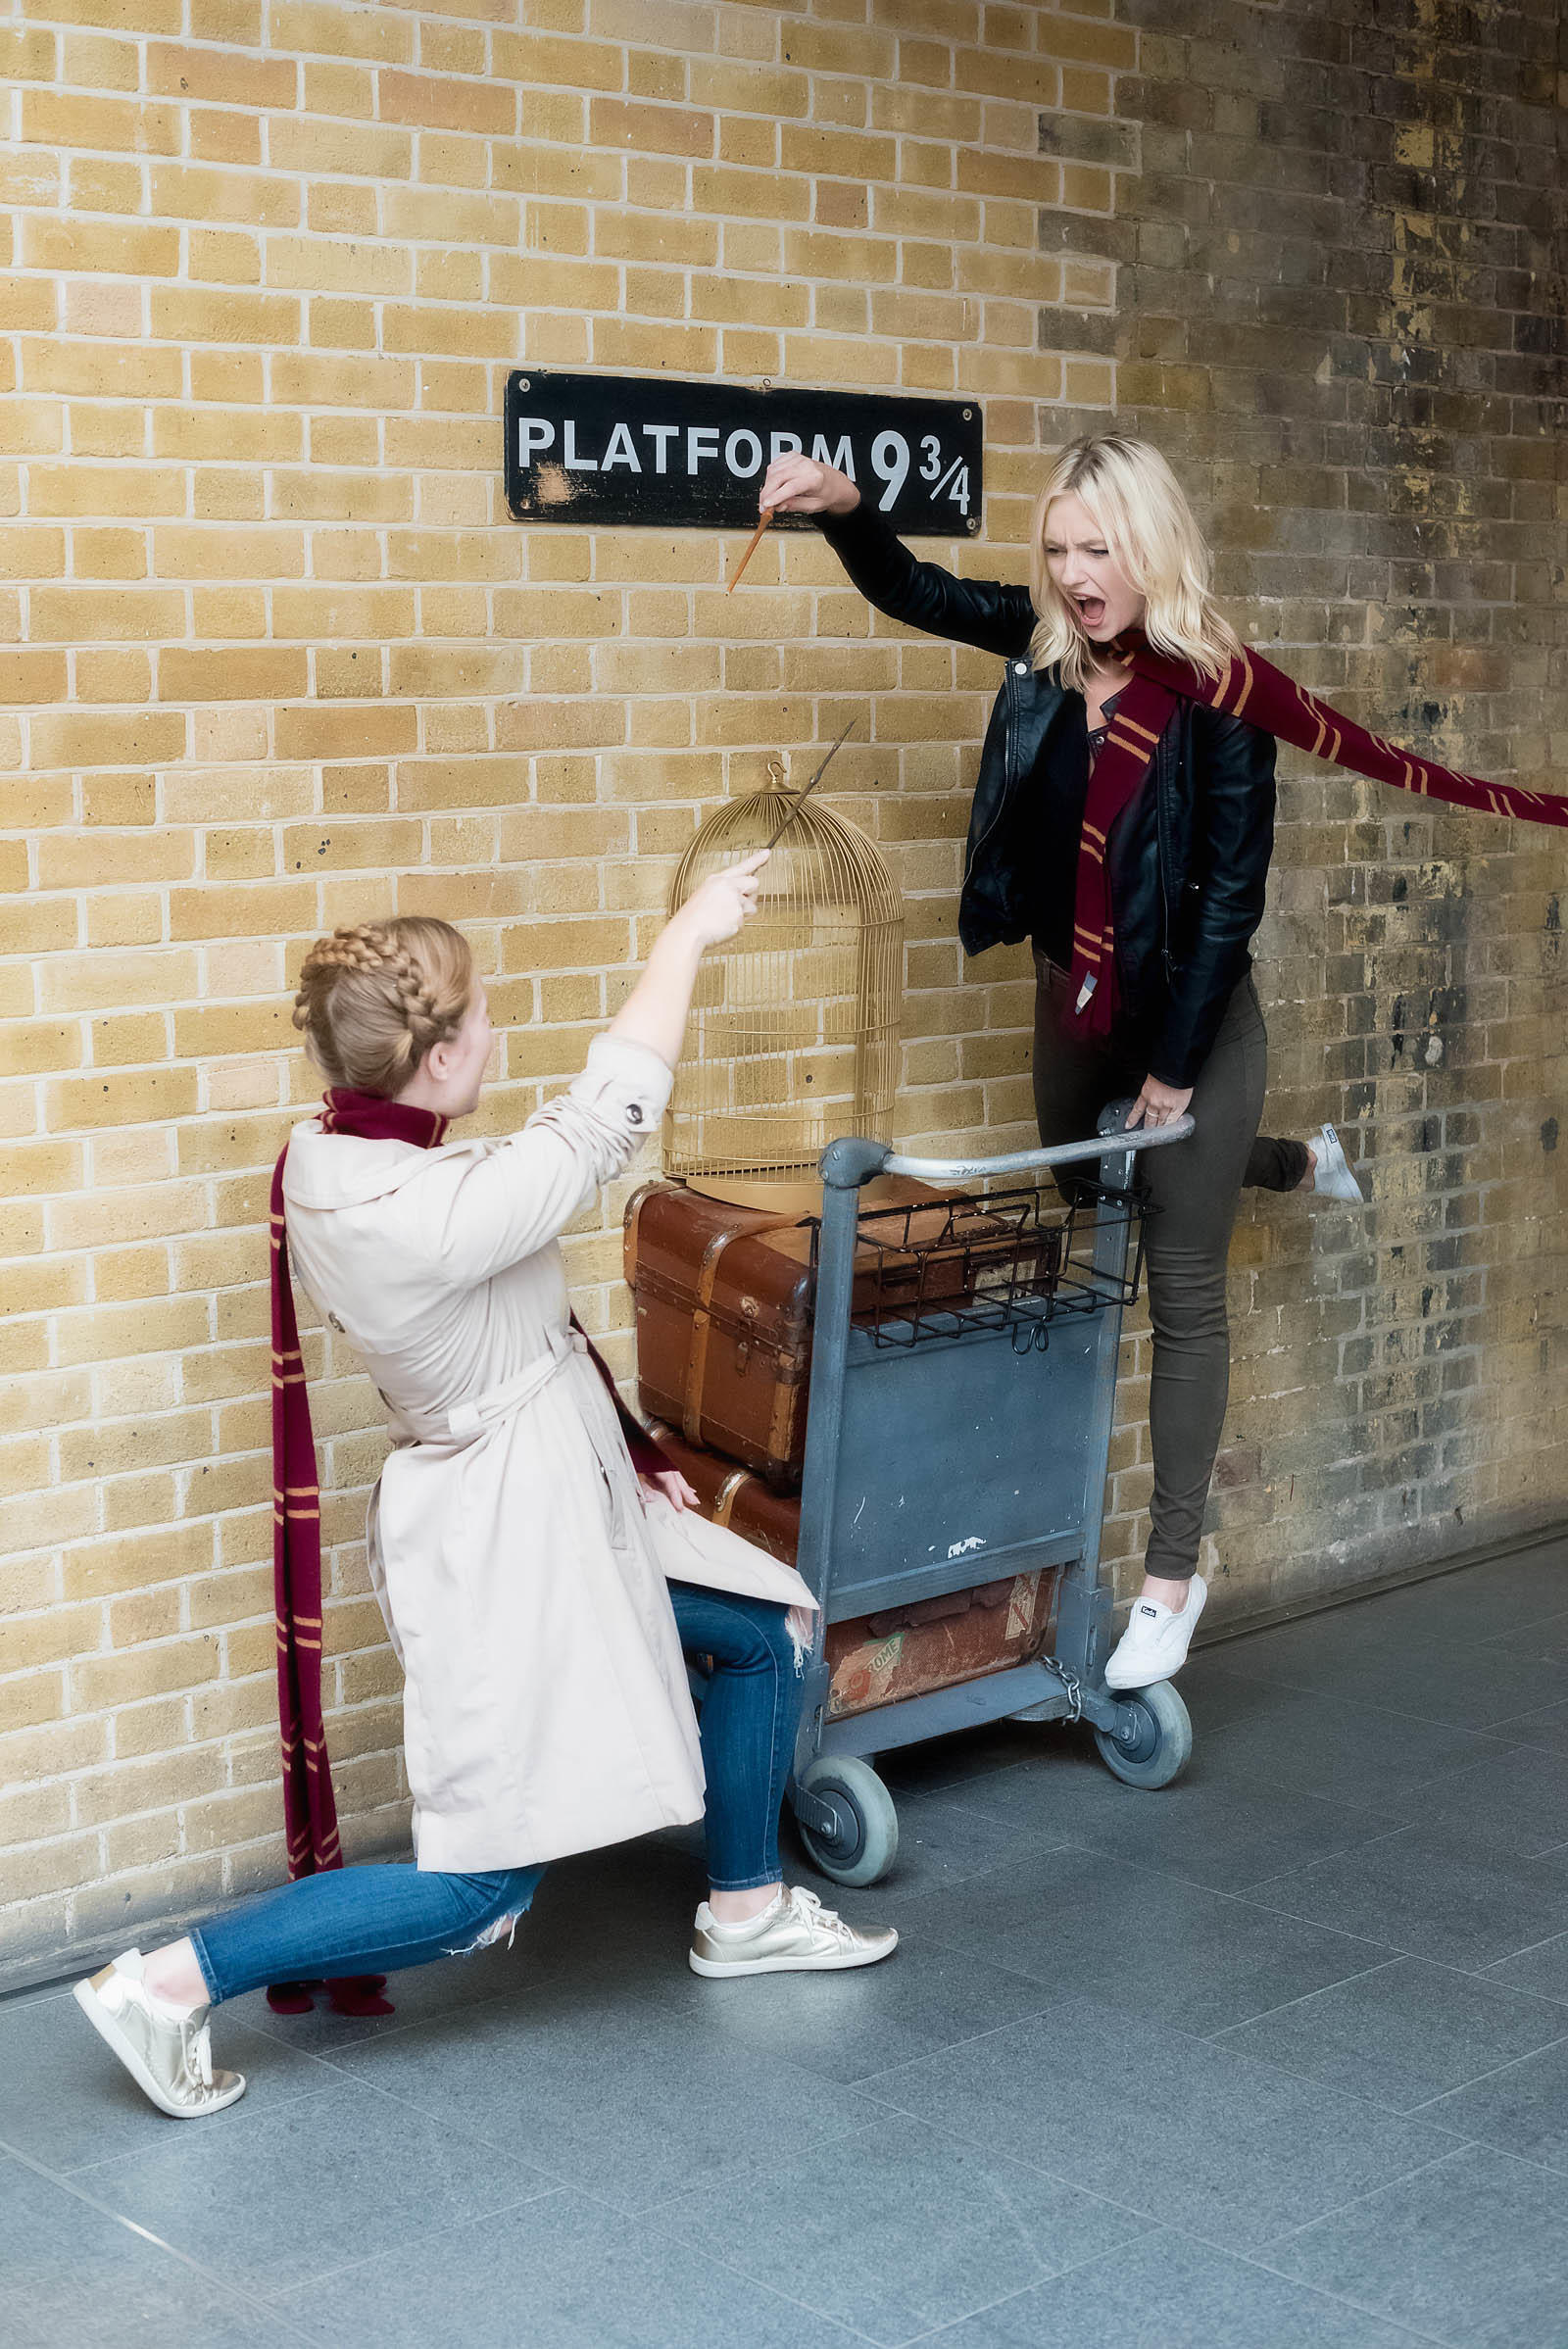 Platform 9 3/4 London King's Cross Station Harry Potter London